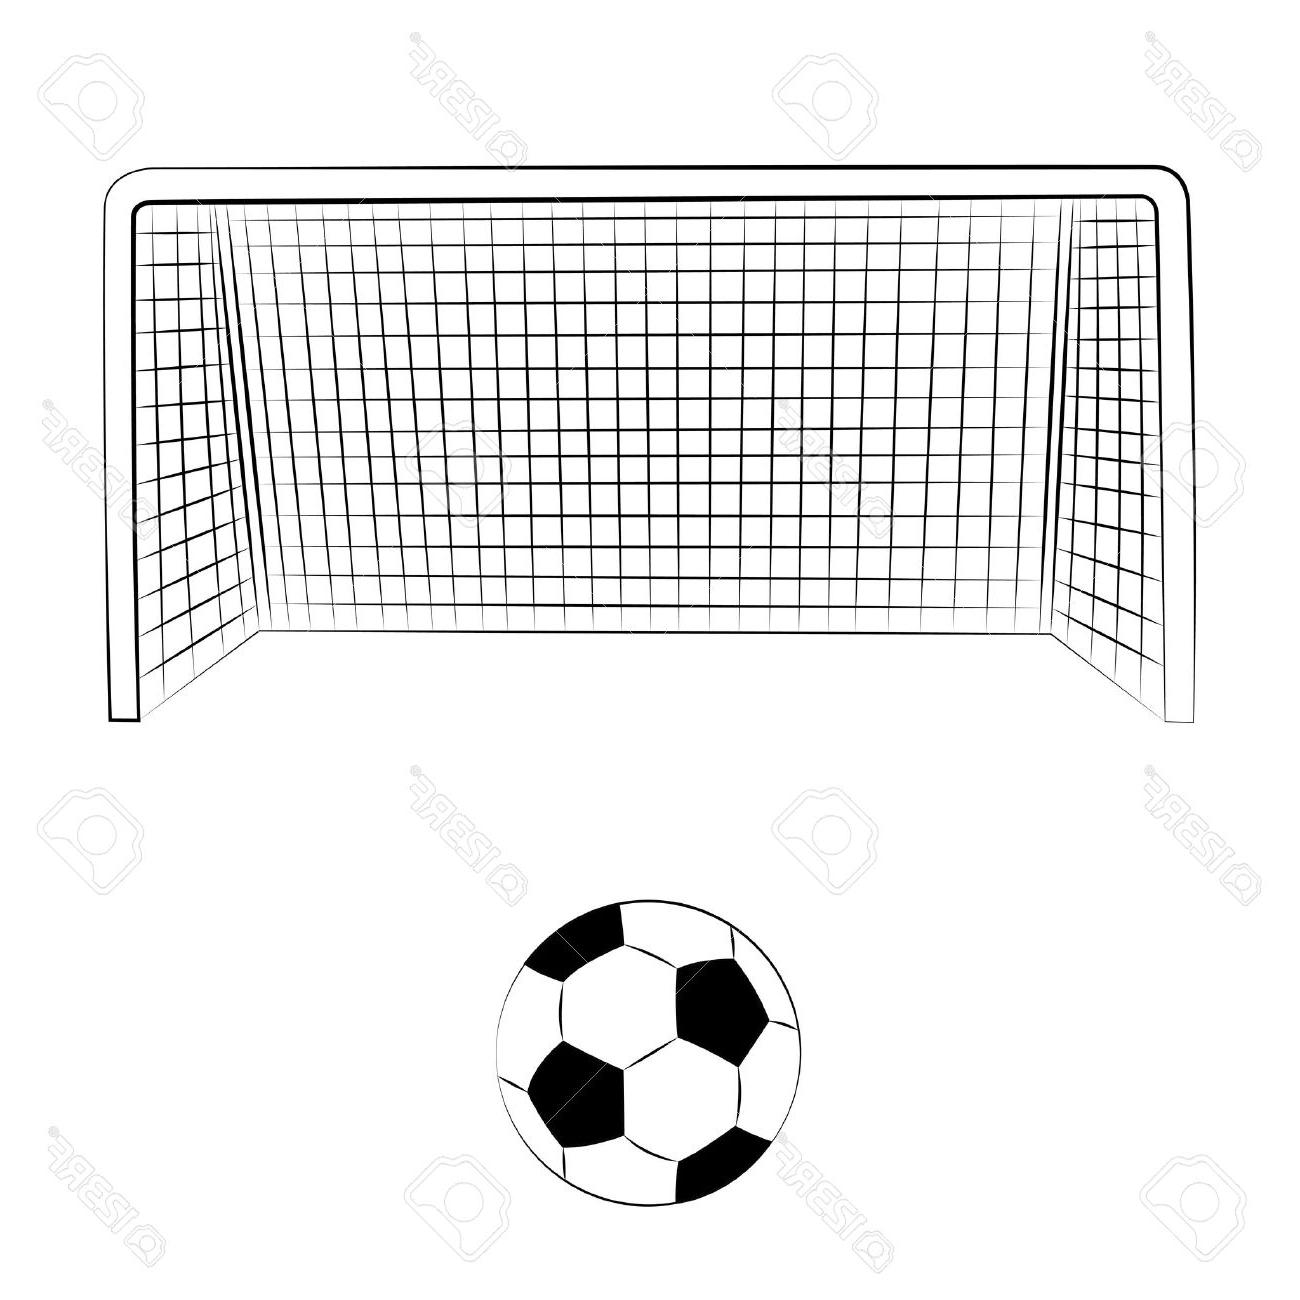 Best Soccer Goal Vector Side Pictures » Free Vector Art.